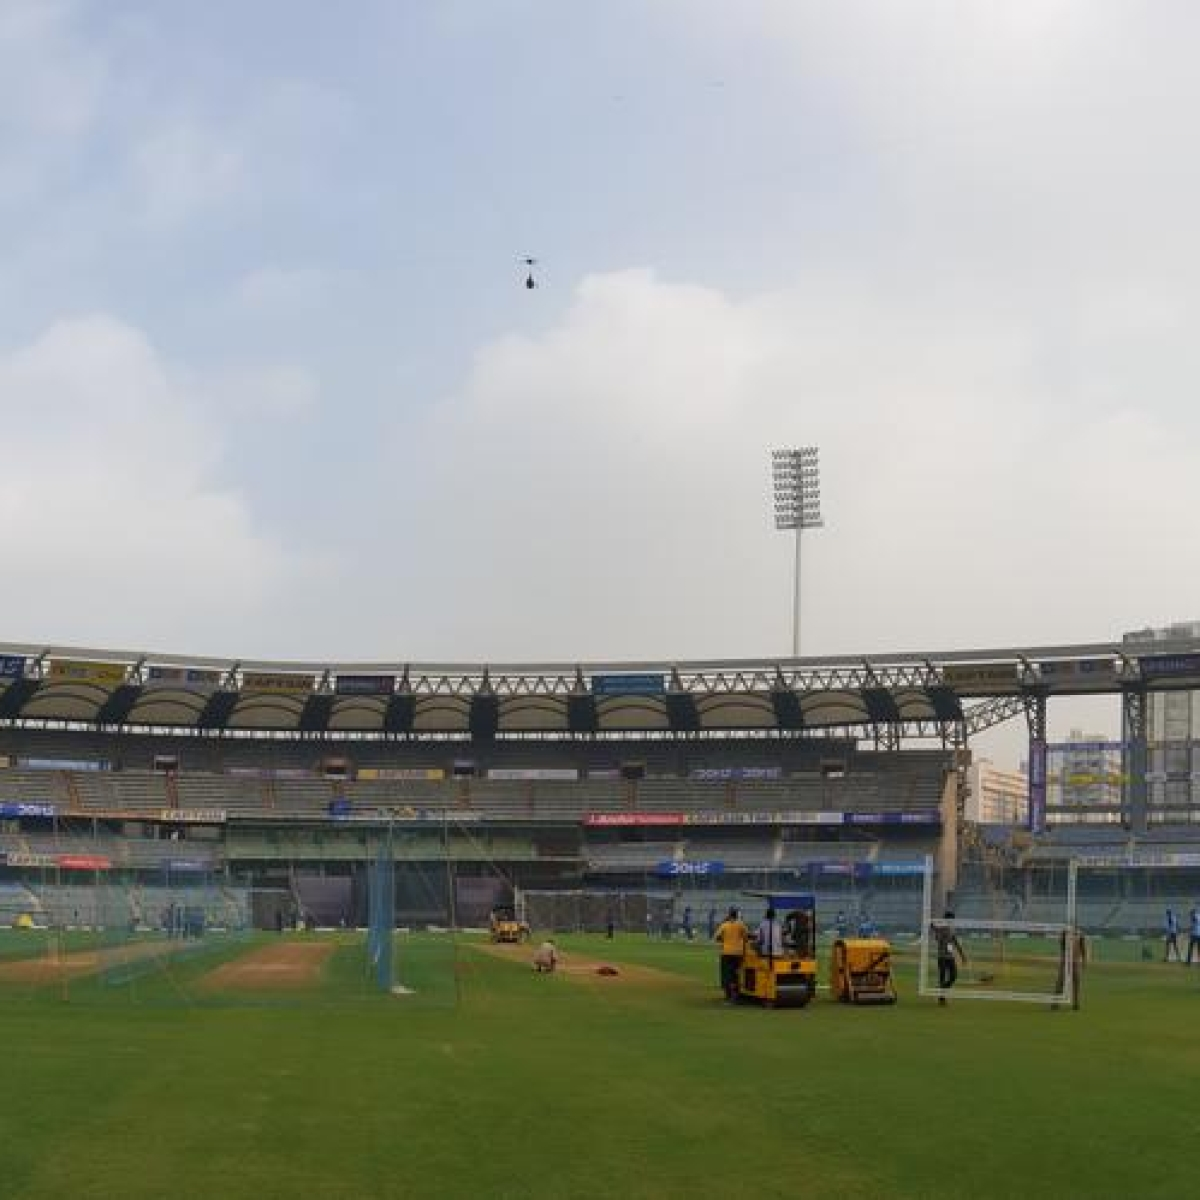 Coronavirus in Mumbai: Wankhede Stadium likely to be converted into a COVID-19 quarantine facility